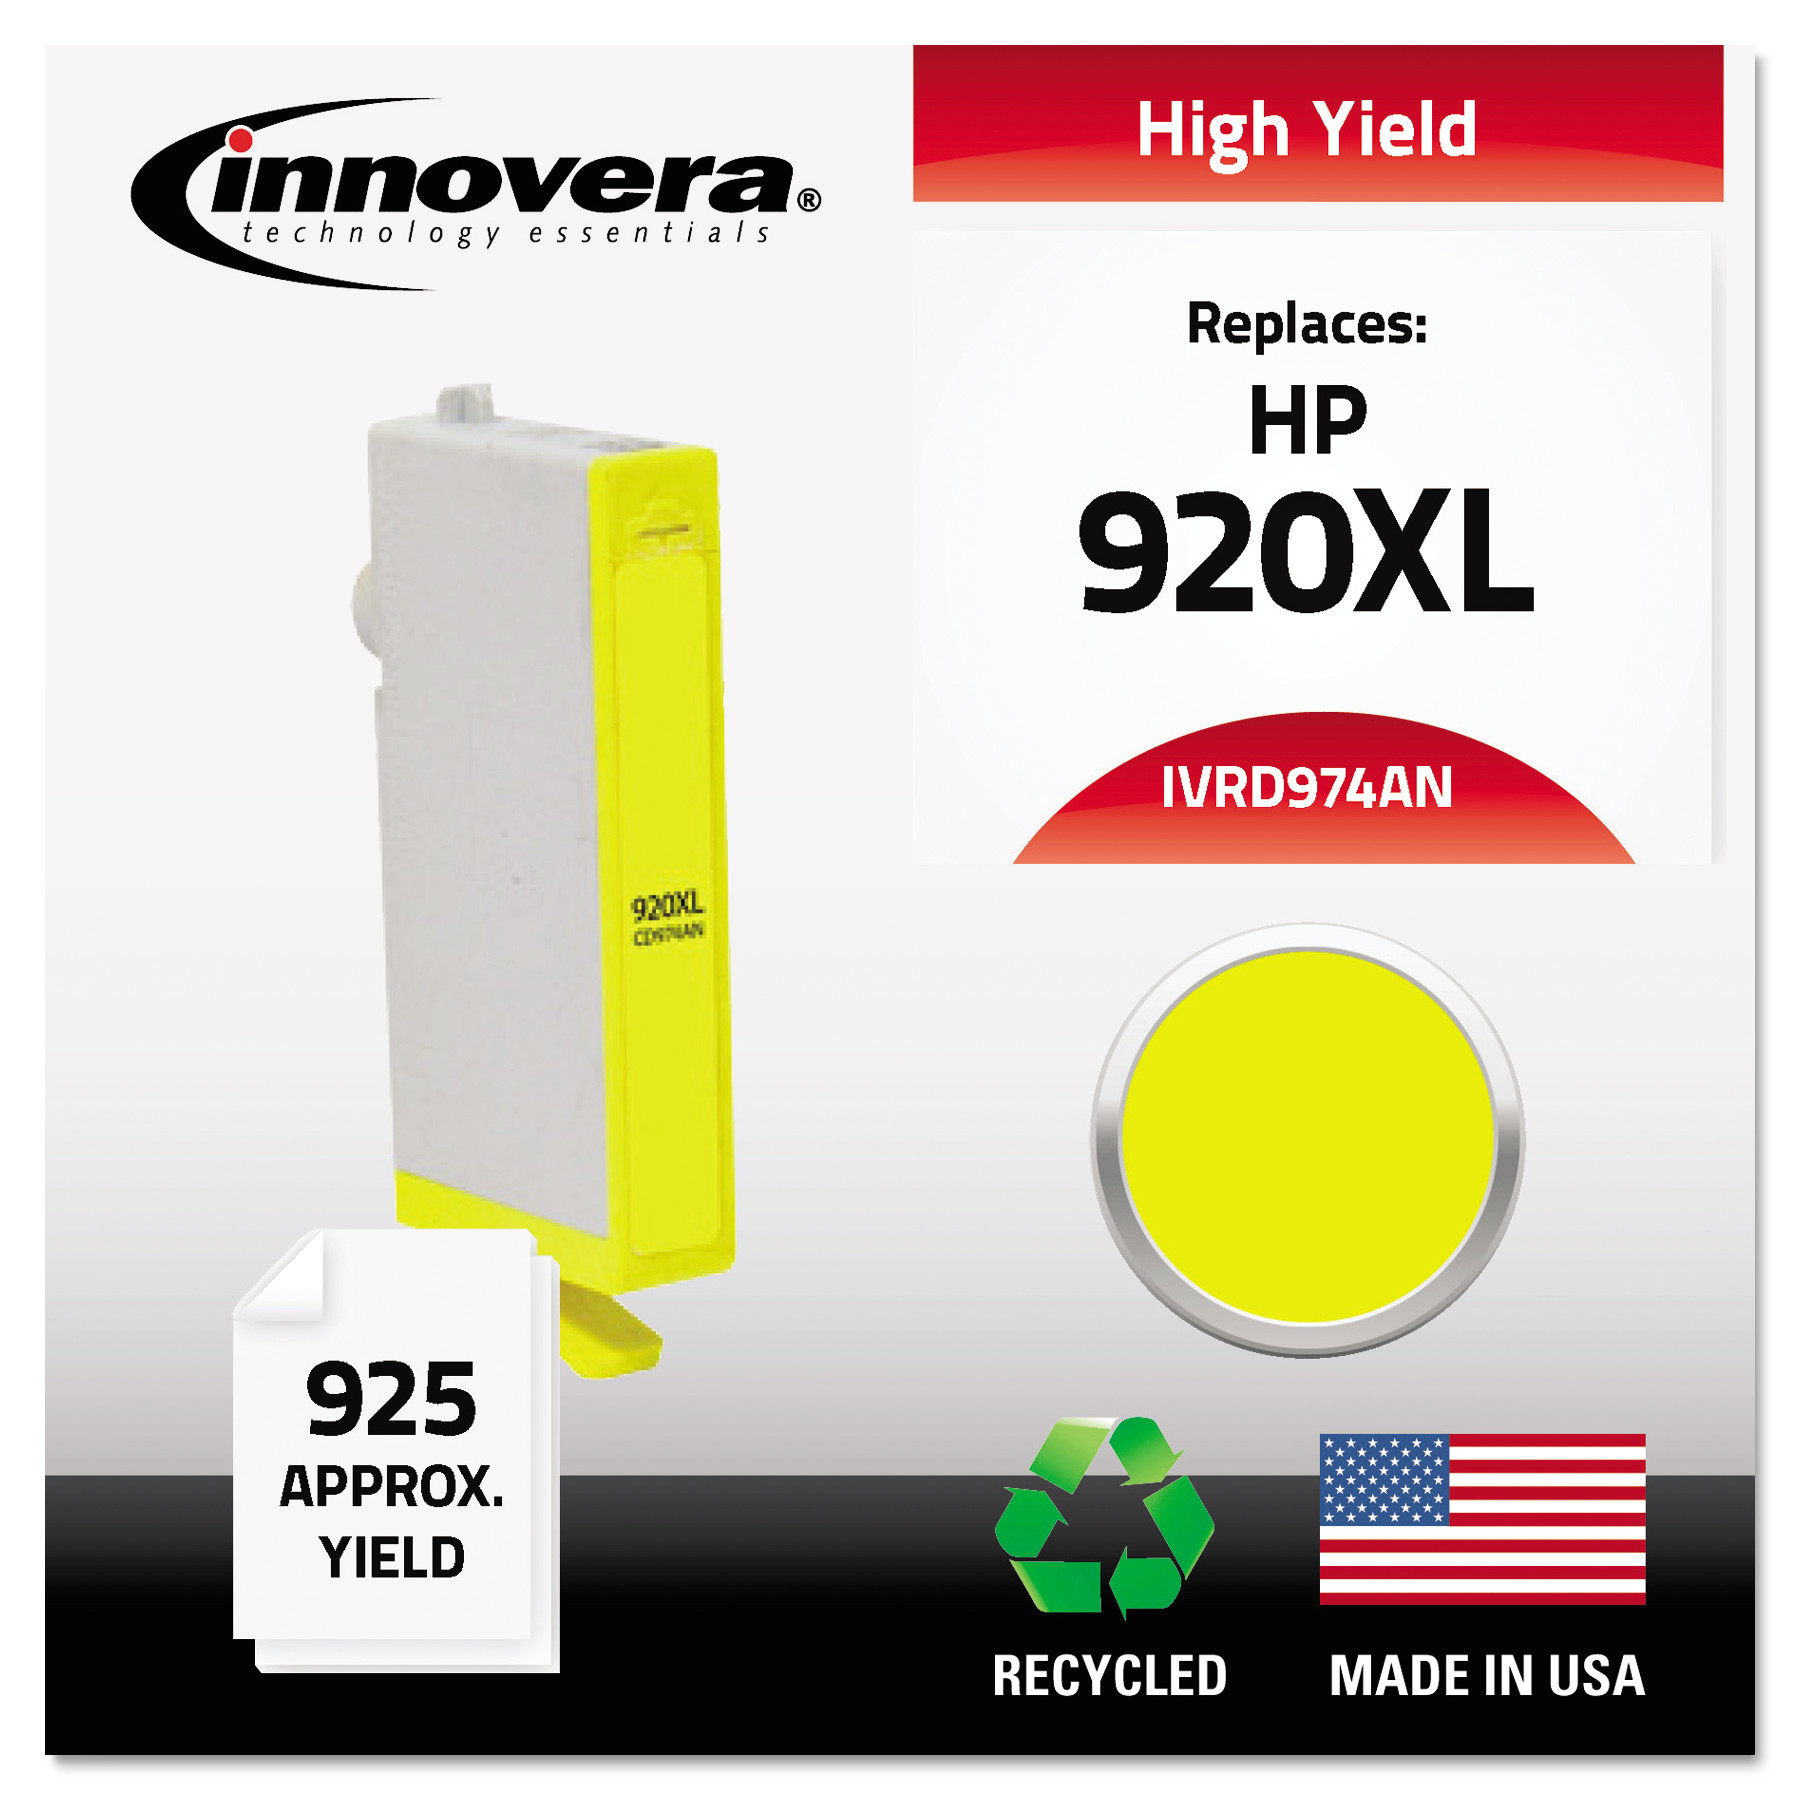 Innovera Remanufactured CD974AN (920XL) High-Yield Chipped Ink, Yellow